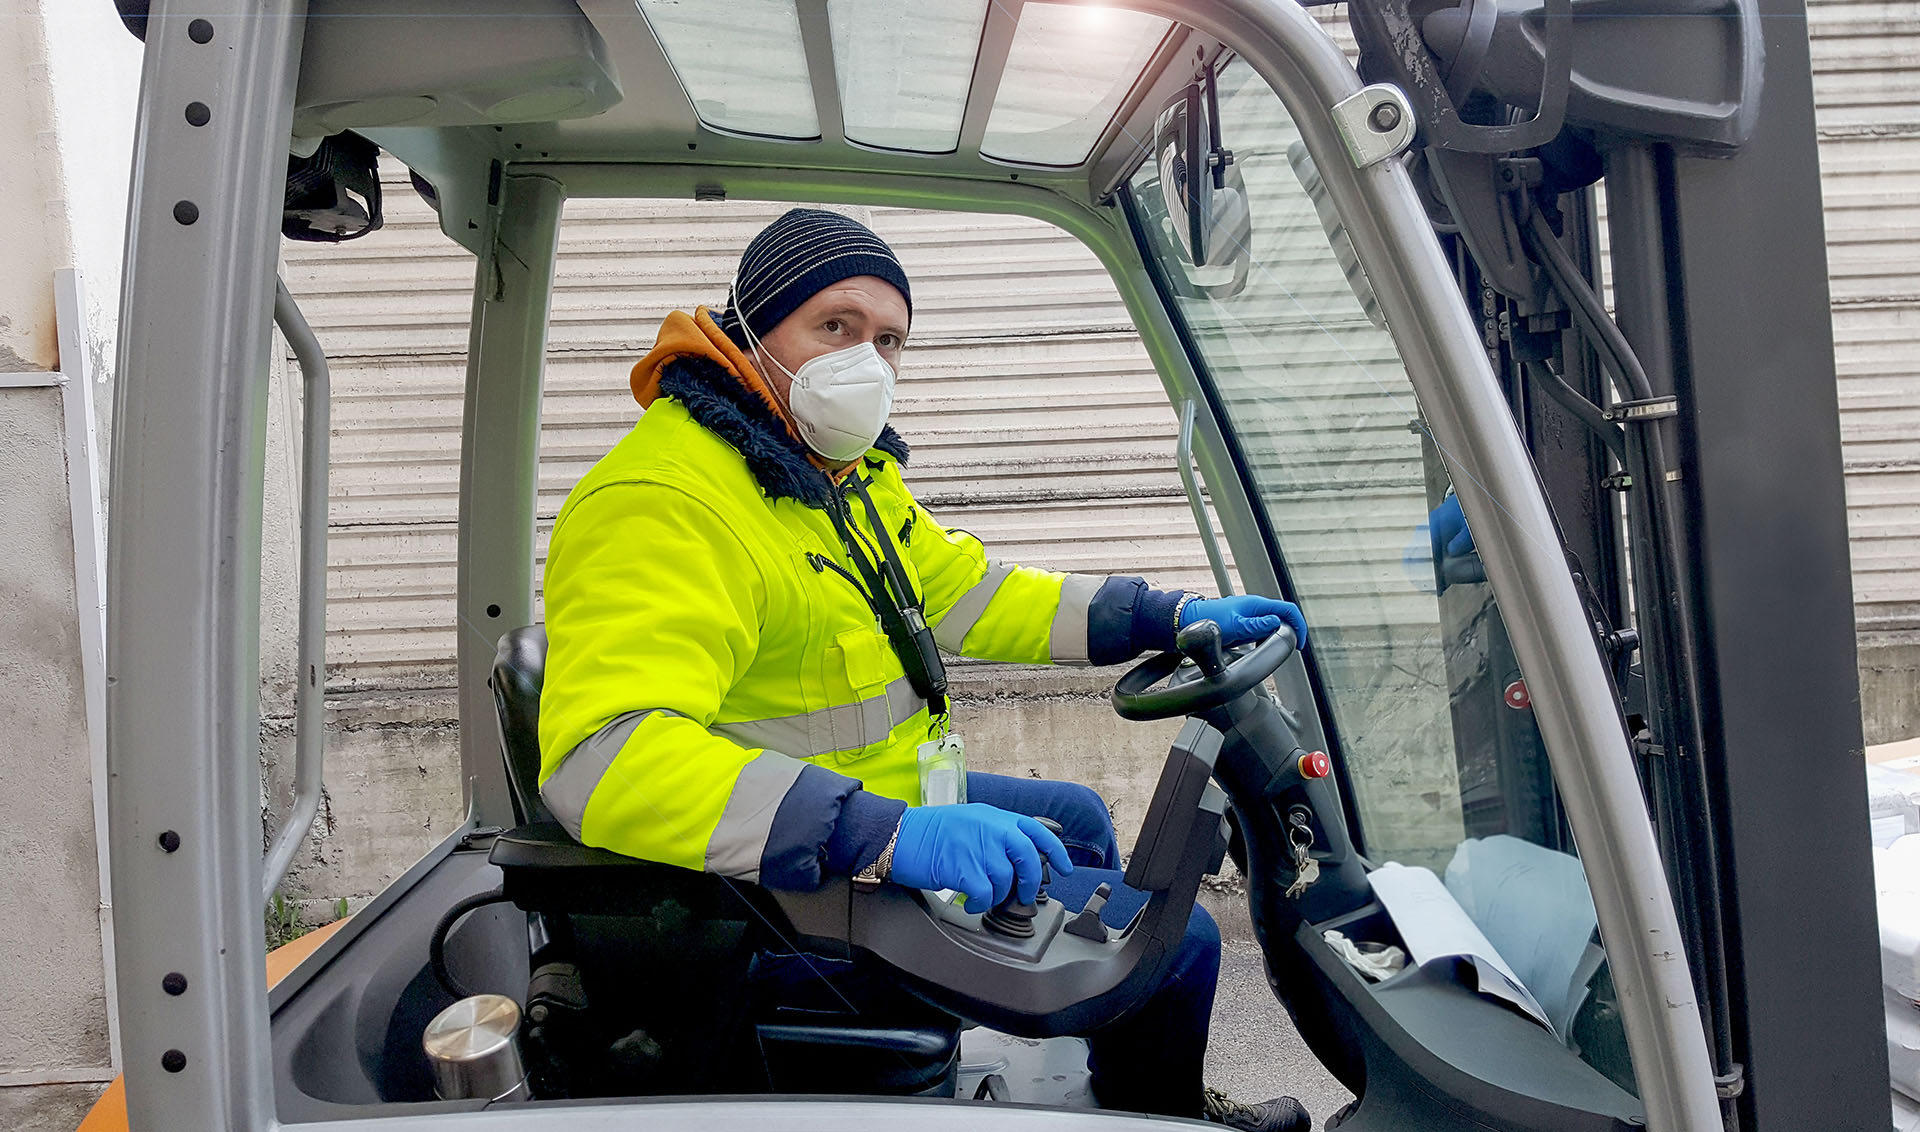 Forklift driver wearing personal protective equipment during COVID19 | Featured image for HLTSS ICTL67 FOR TRANSPORT AND LOGISTICS.